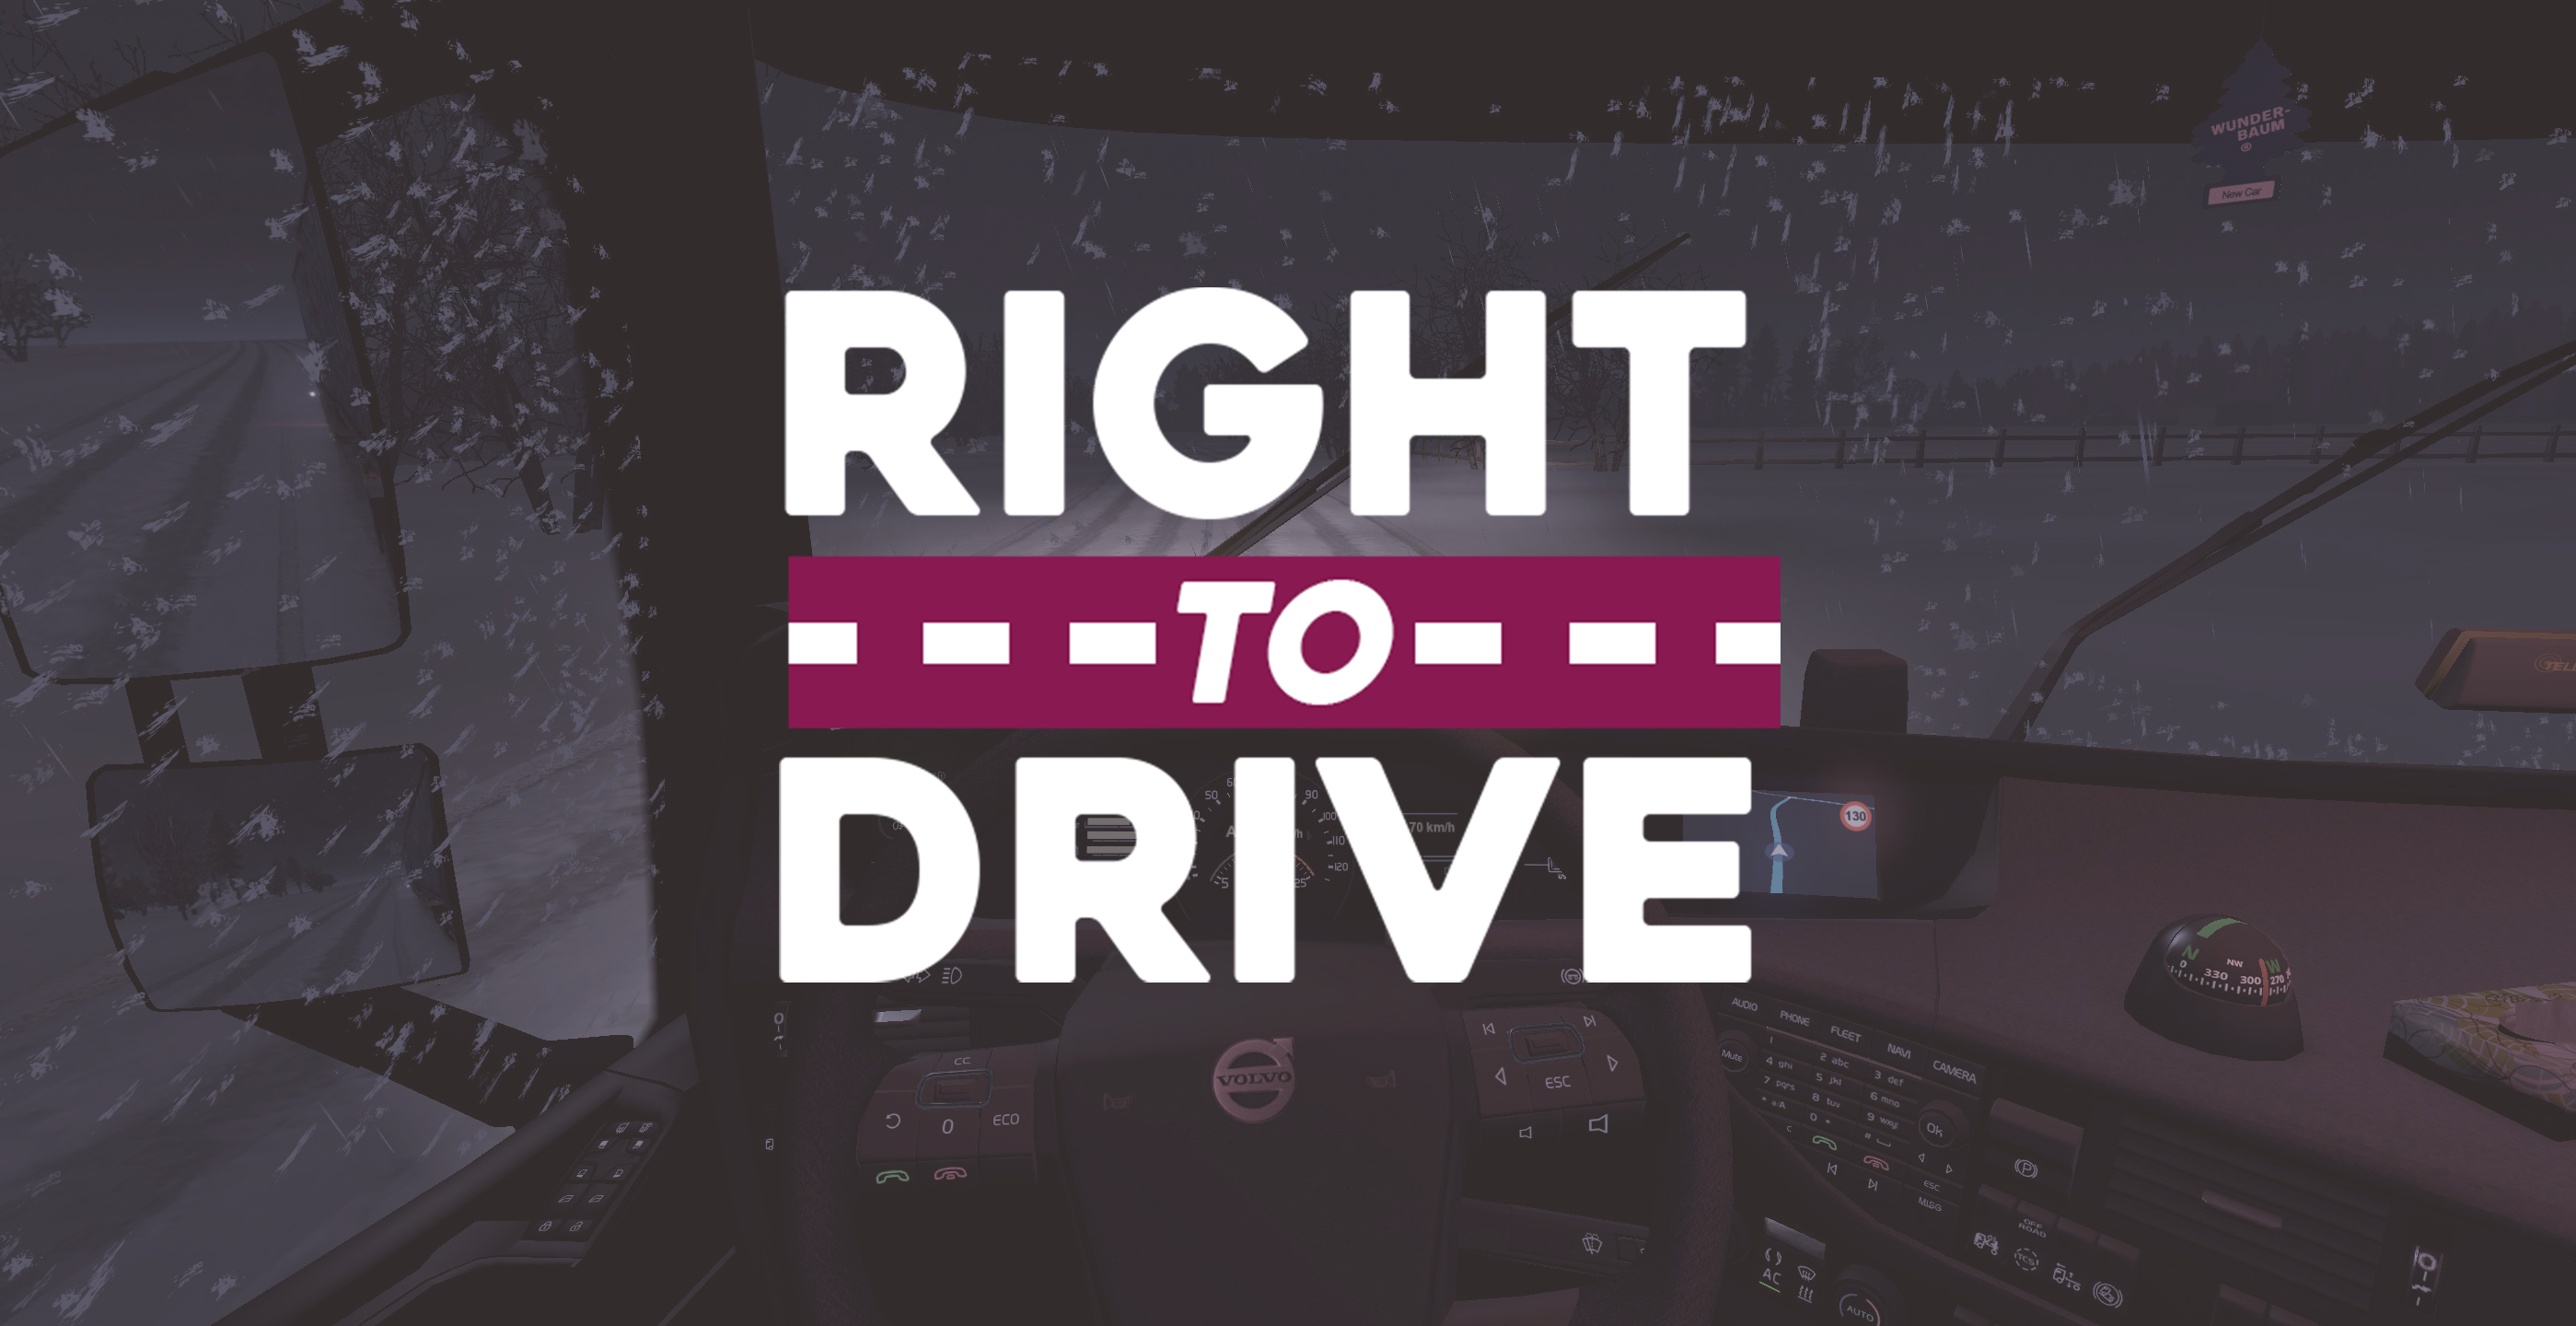 Right_To_Drive_Campaign.jpg